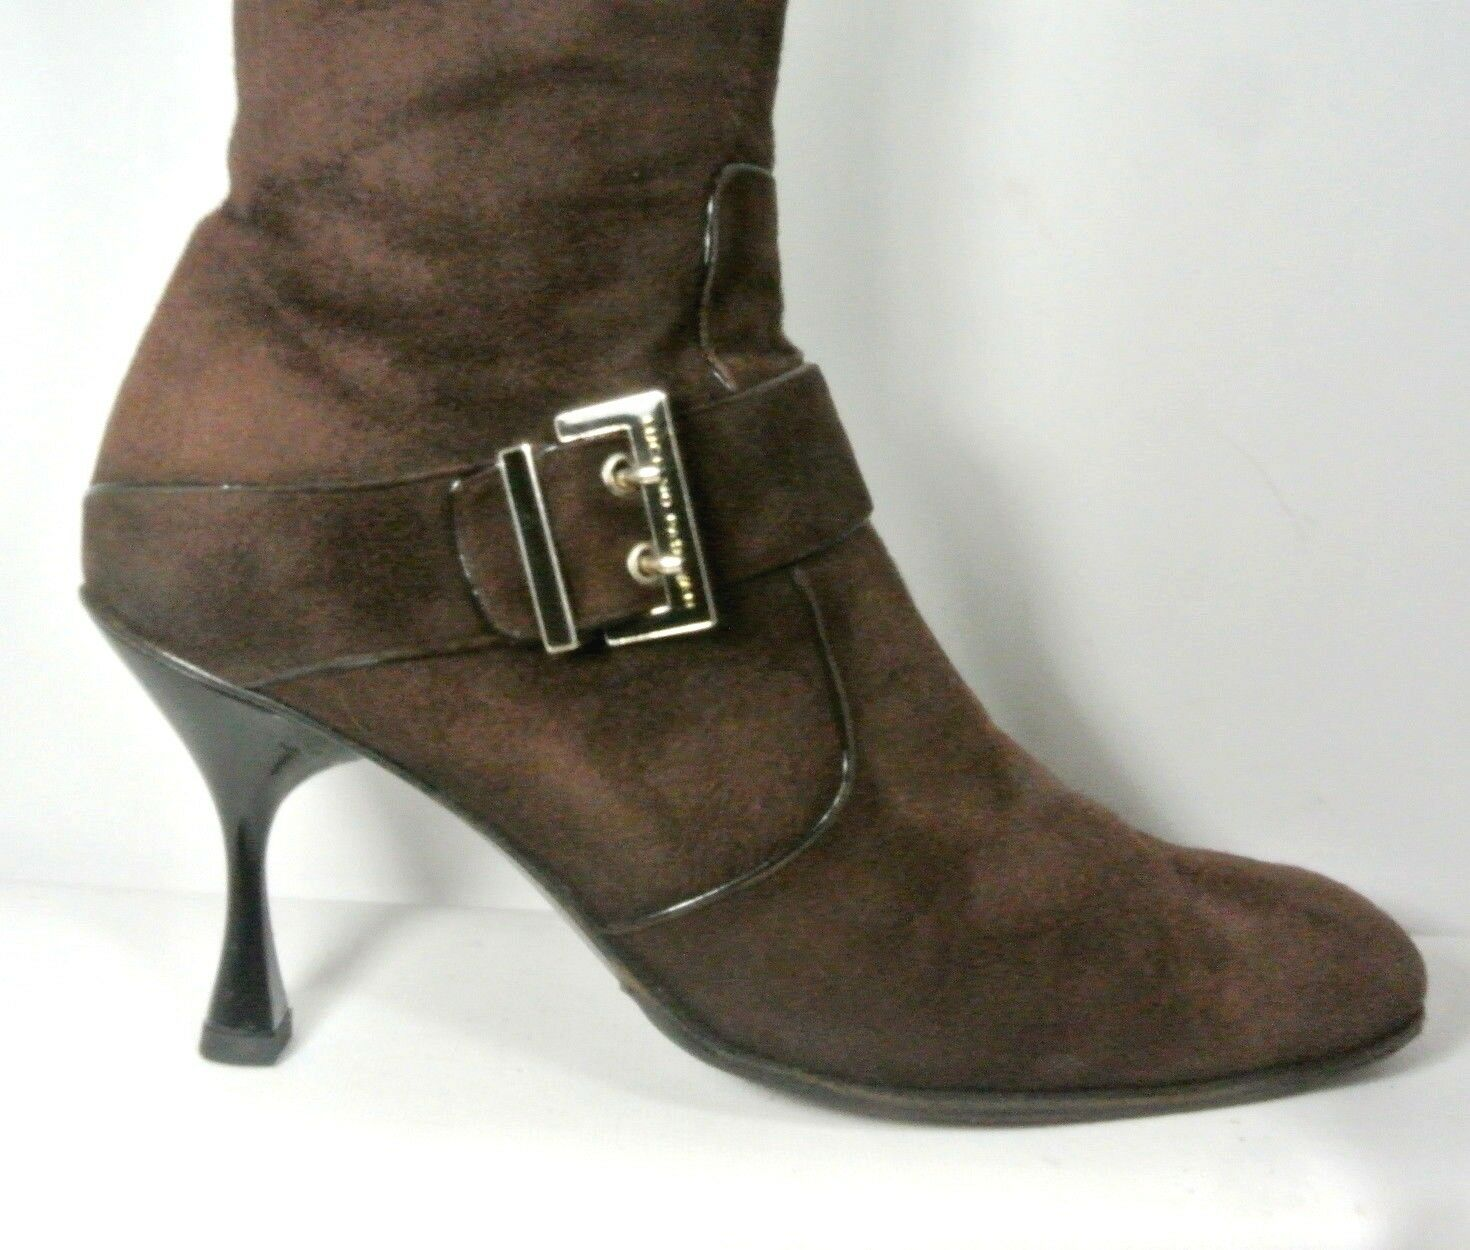 Luciano Damens Padovan Braun Suede Buckle Strap High Heel Boot Damens Luciano US10 Made in  e7ccdc